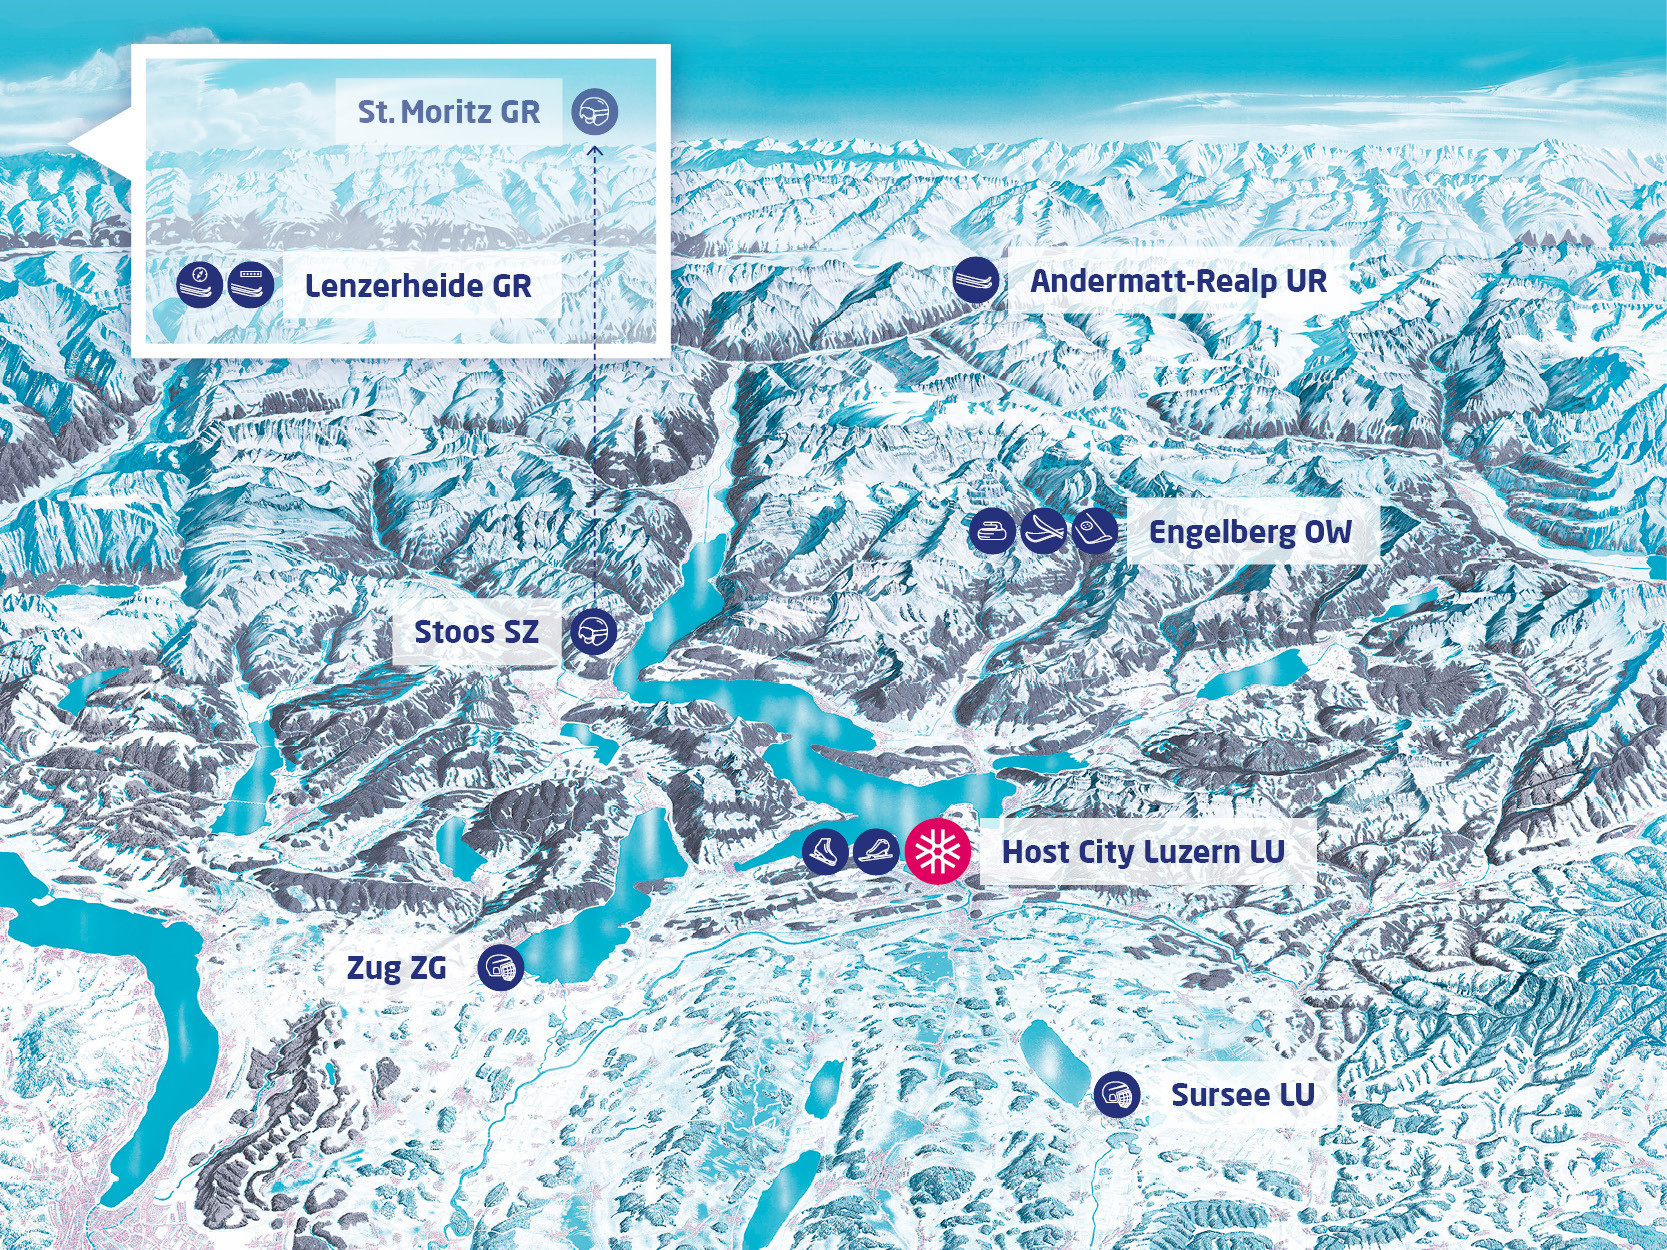 Eight venues are scheduled to host competition at the Lucerne 2021 Winter Universiade ©Lucerne 2021